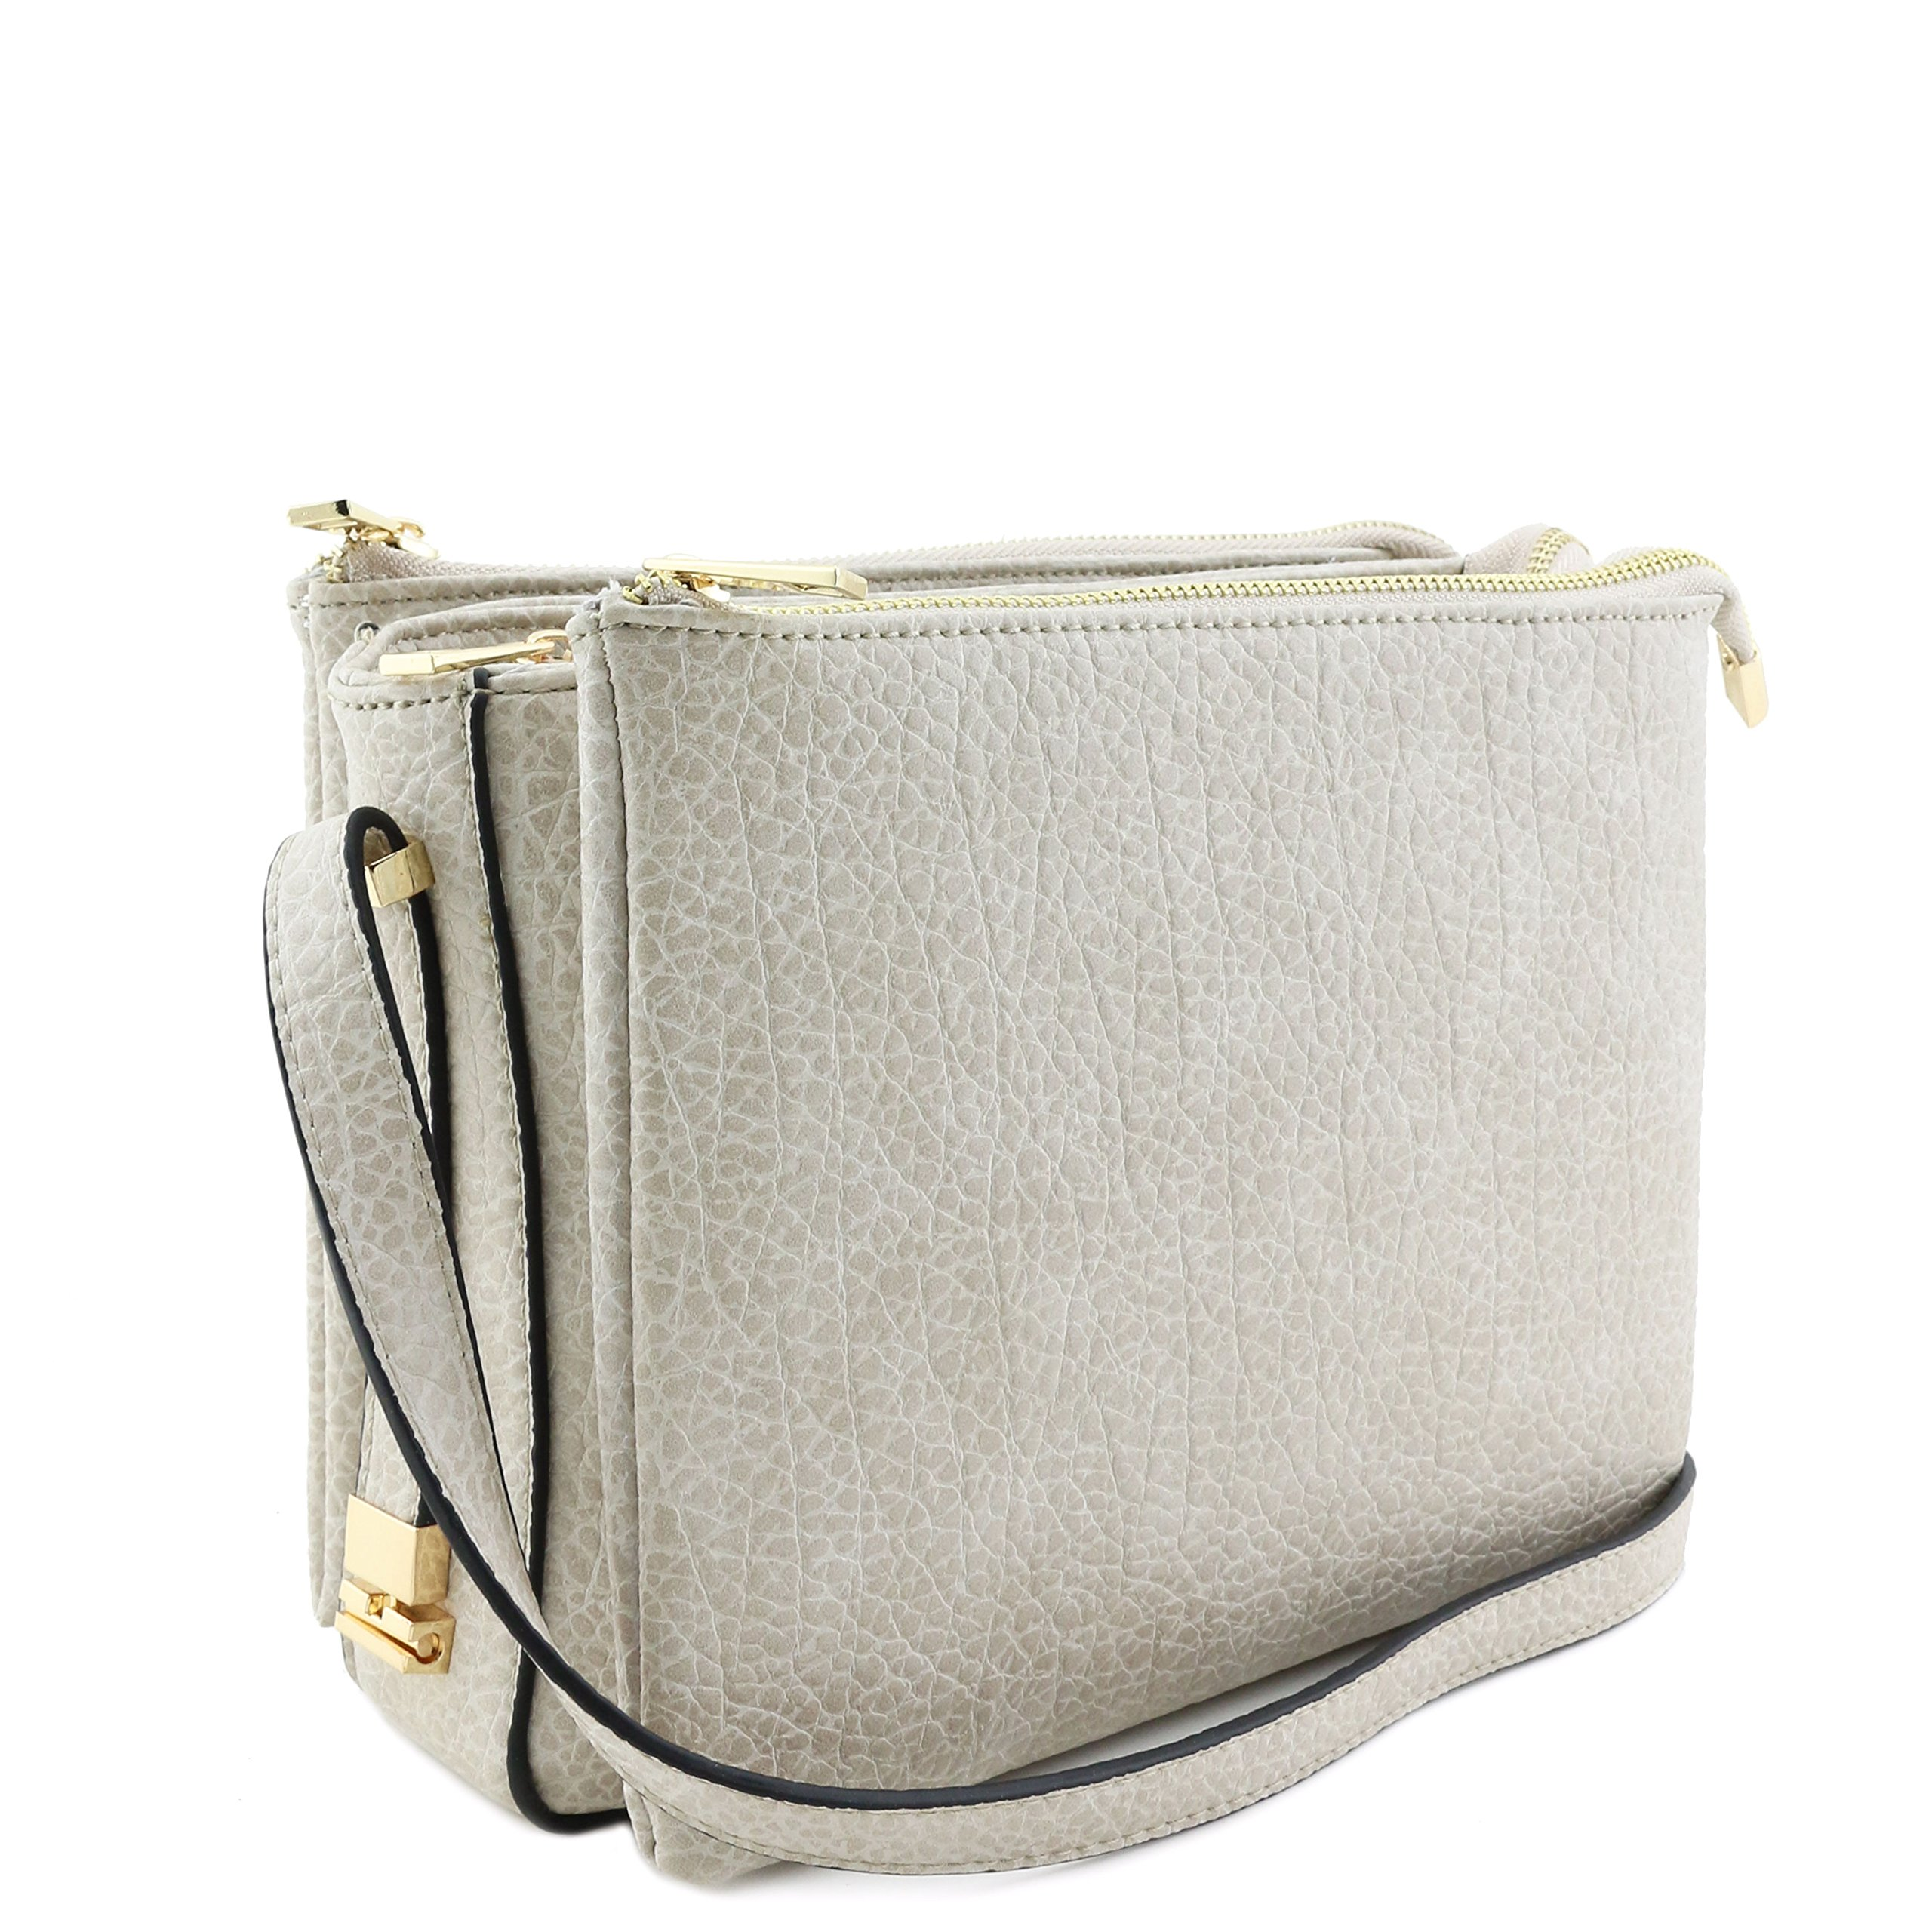 Three Compartment Zipper Top Crossbody Bag Beige